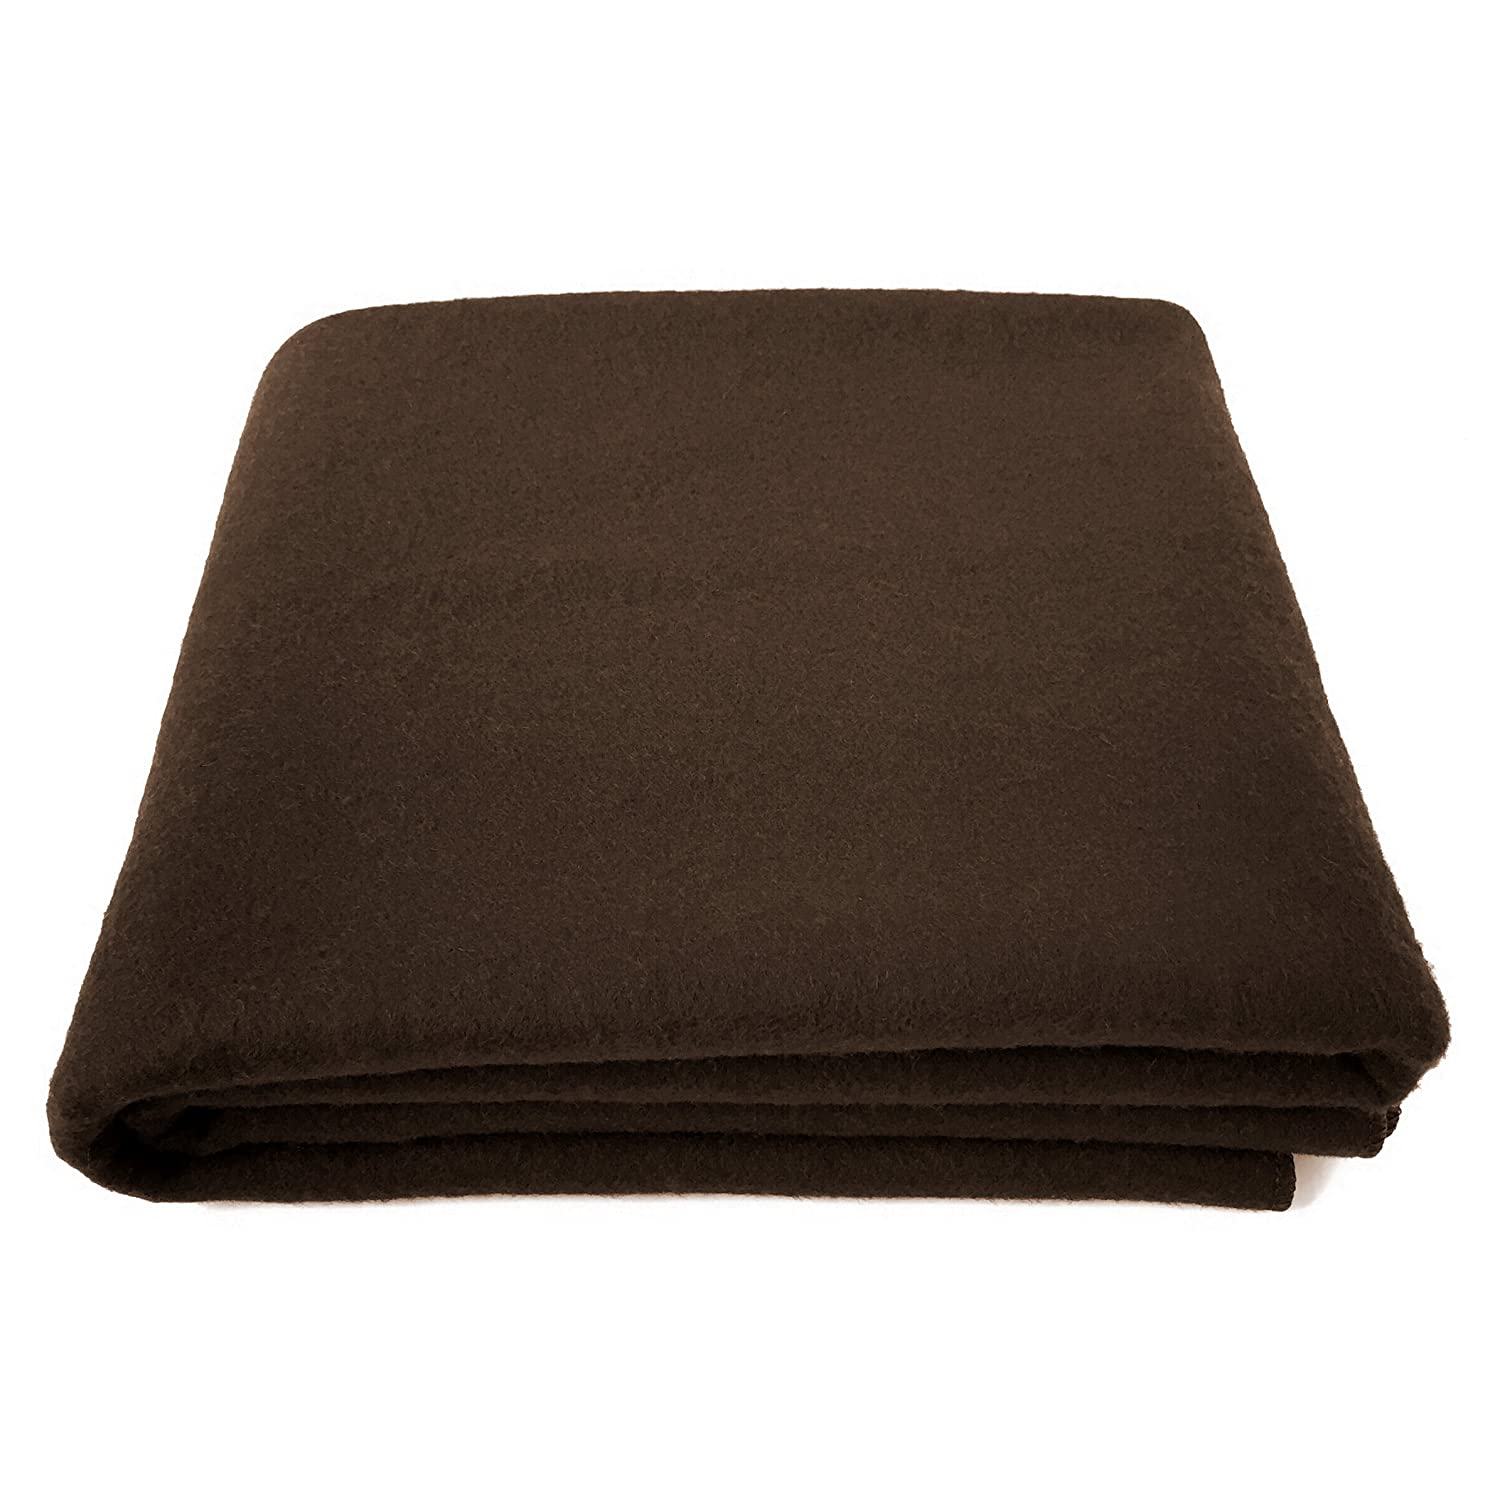 EKTOS 80% Wool Blanket, Brown, Light & Warm 3.7 lbs, Large Washable 66